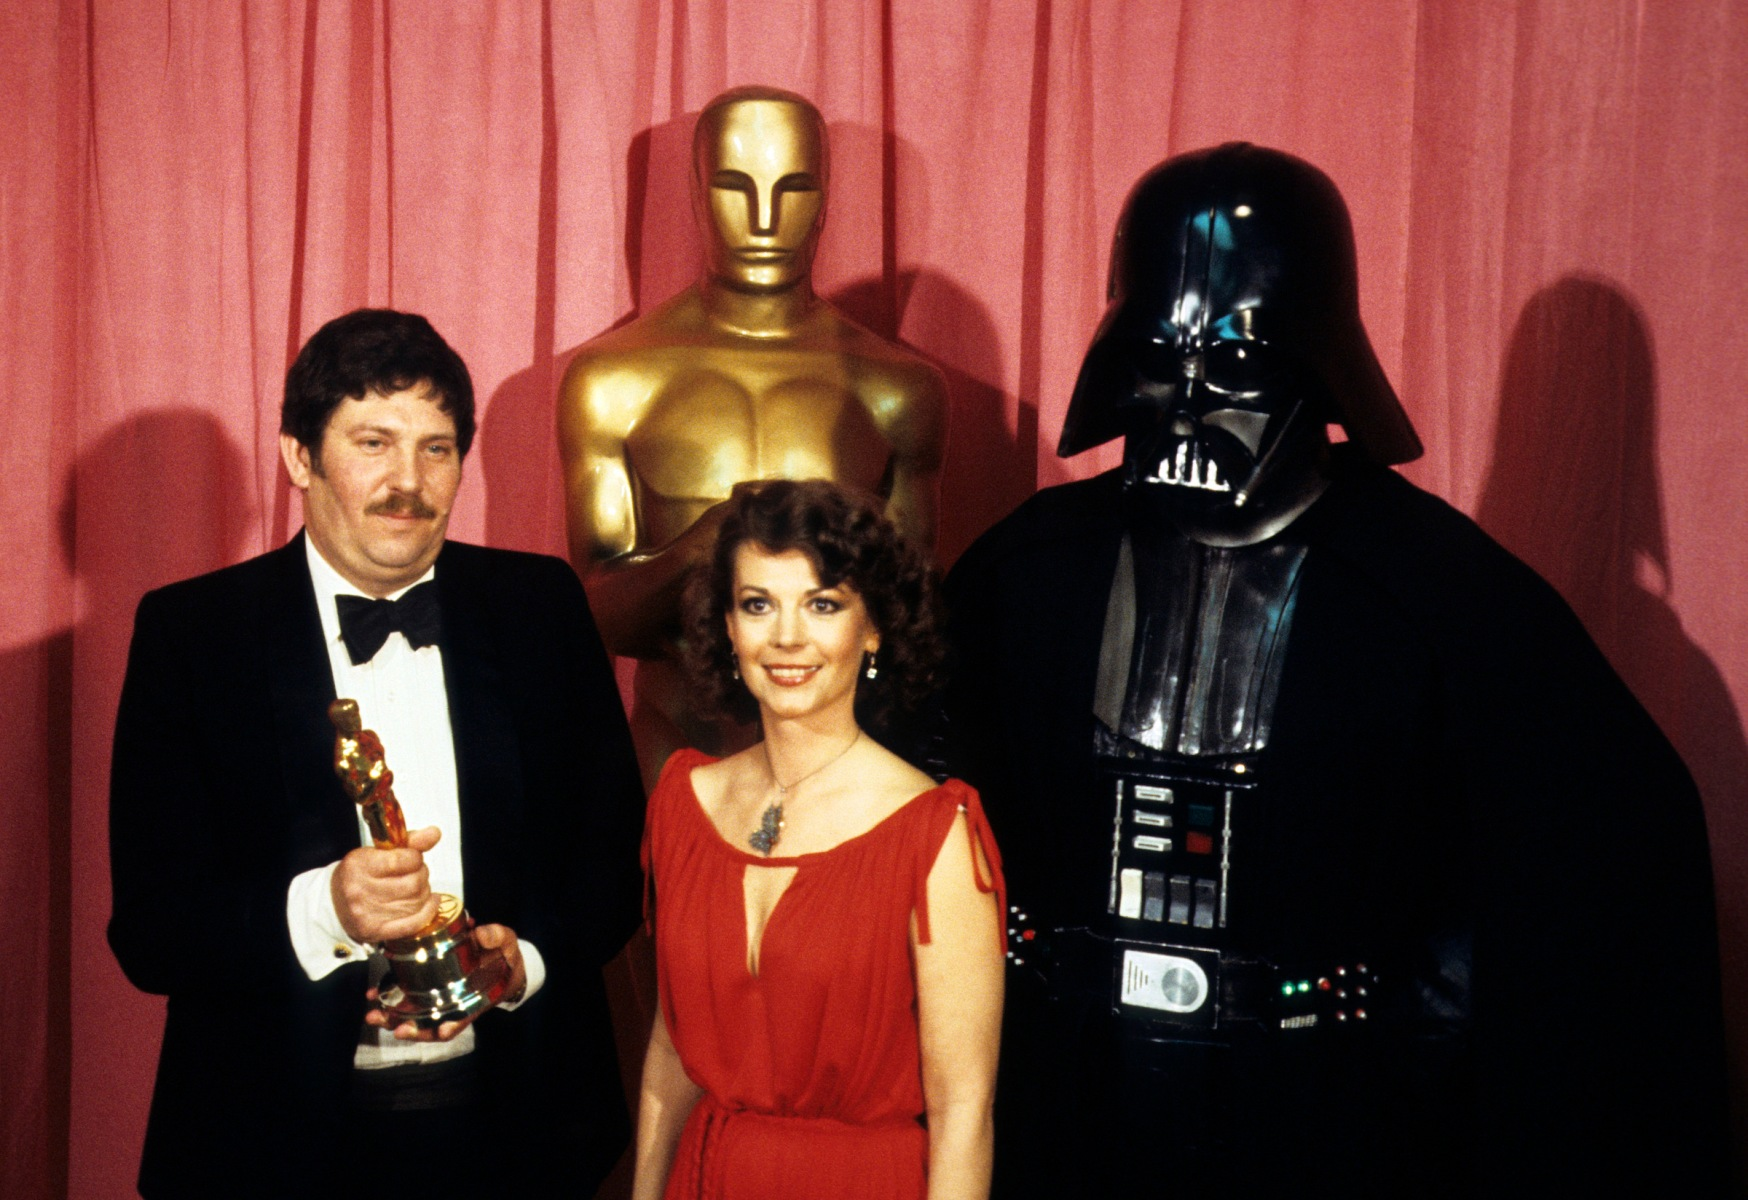 THE 50TH ANNUAL ACADEMY AWARDS - Show Coverage - Shoot Date: April 3, 1978. (Photo by ABC Photo Archives/ABC via Getty Images) JOHN MOLLO;NATALIE WOOD;DARTH VADER